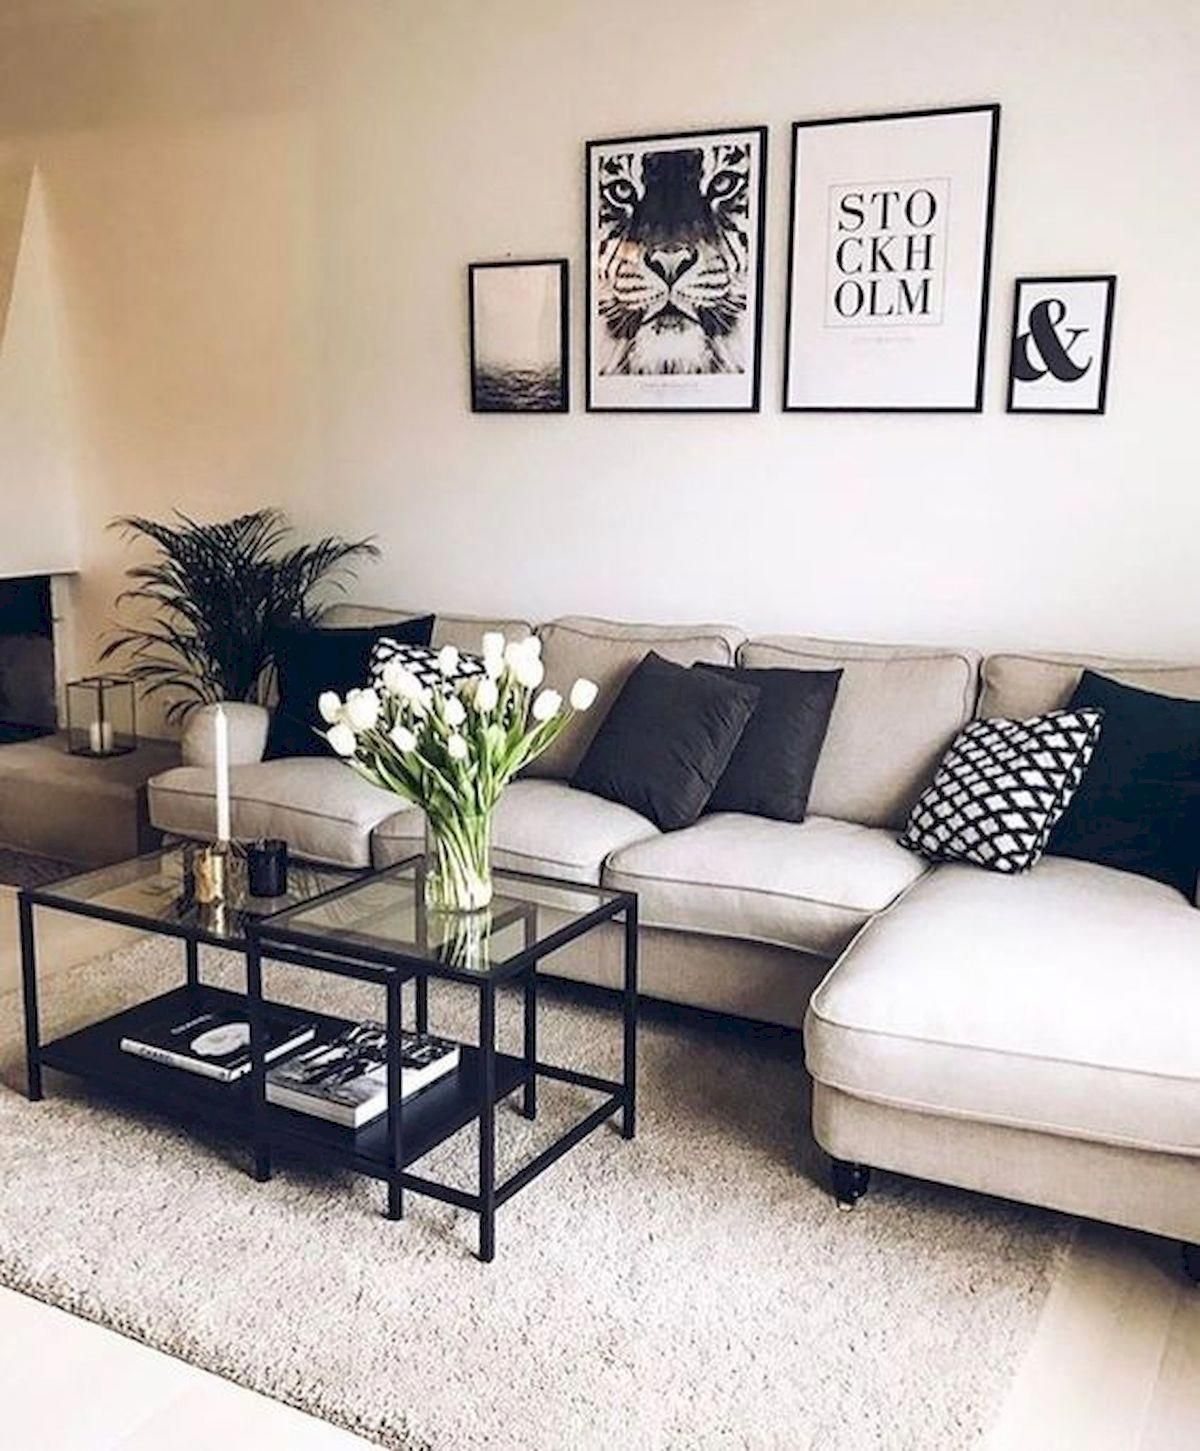 Nice 2019 Best Living Room Wall Art Ideas And Decorations Source Worldecor Co Living Room Decor Apartment Fabulous Living Room Decor Living Room Decor Modern Living room art ideas